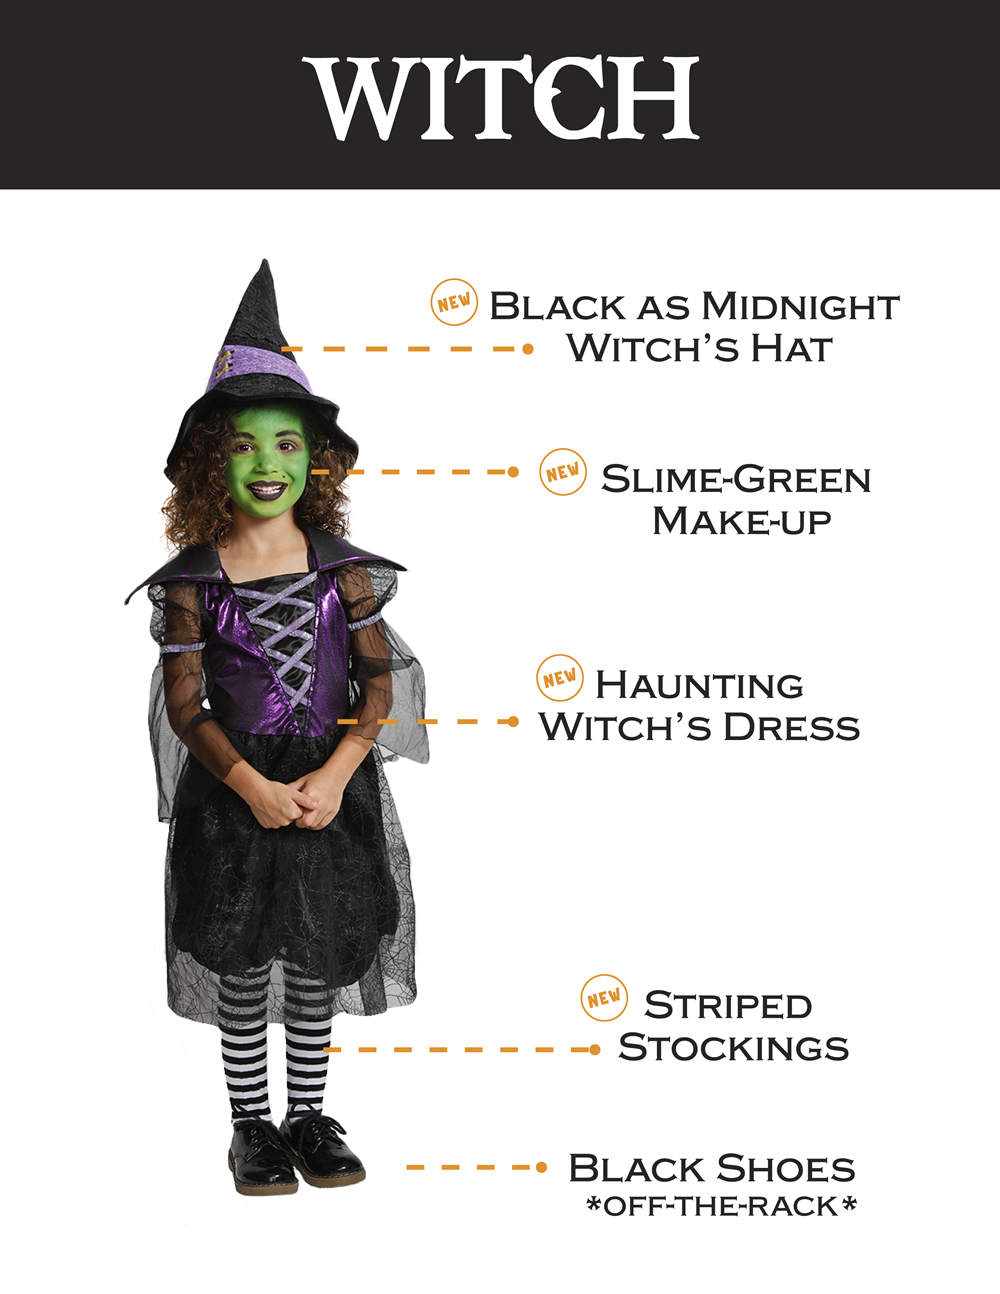 Witch:  black as midnight witches hat, slime-green makeup, haunting witches dress, striped stockings